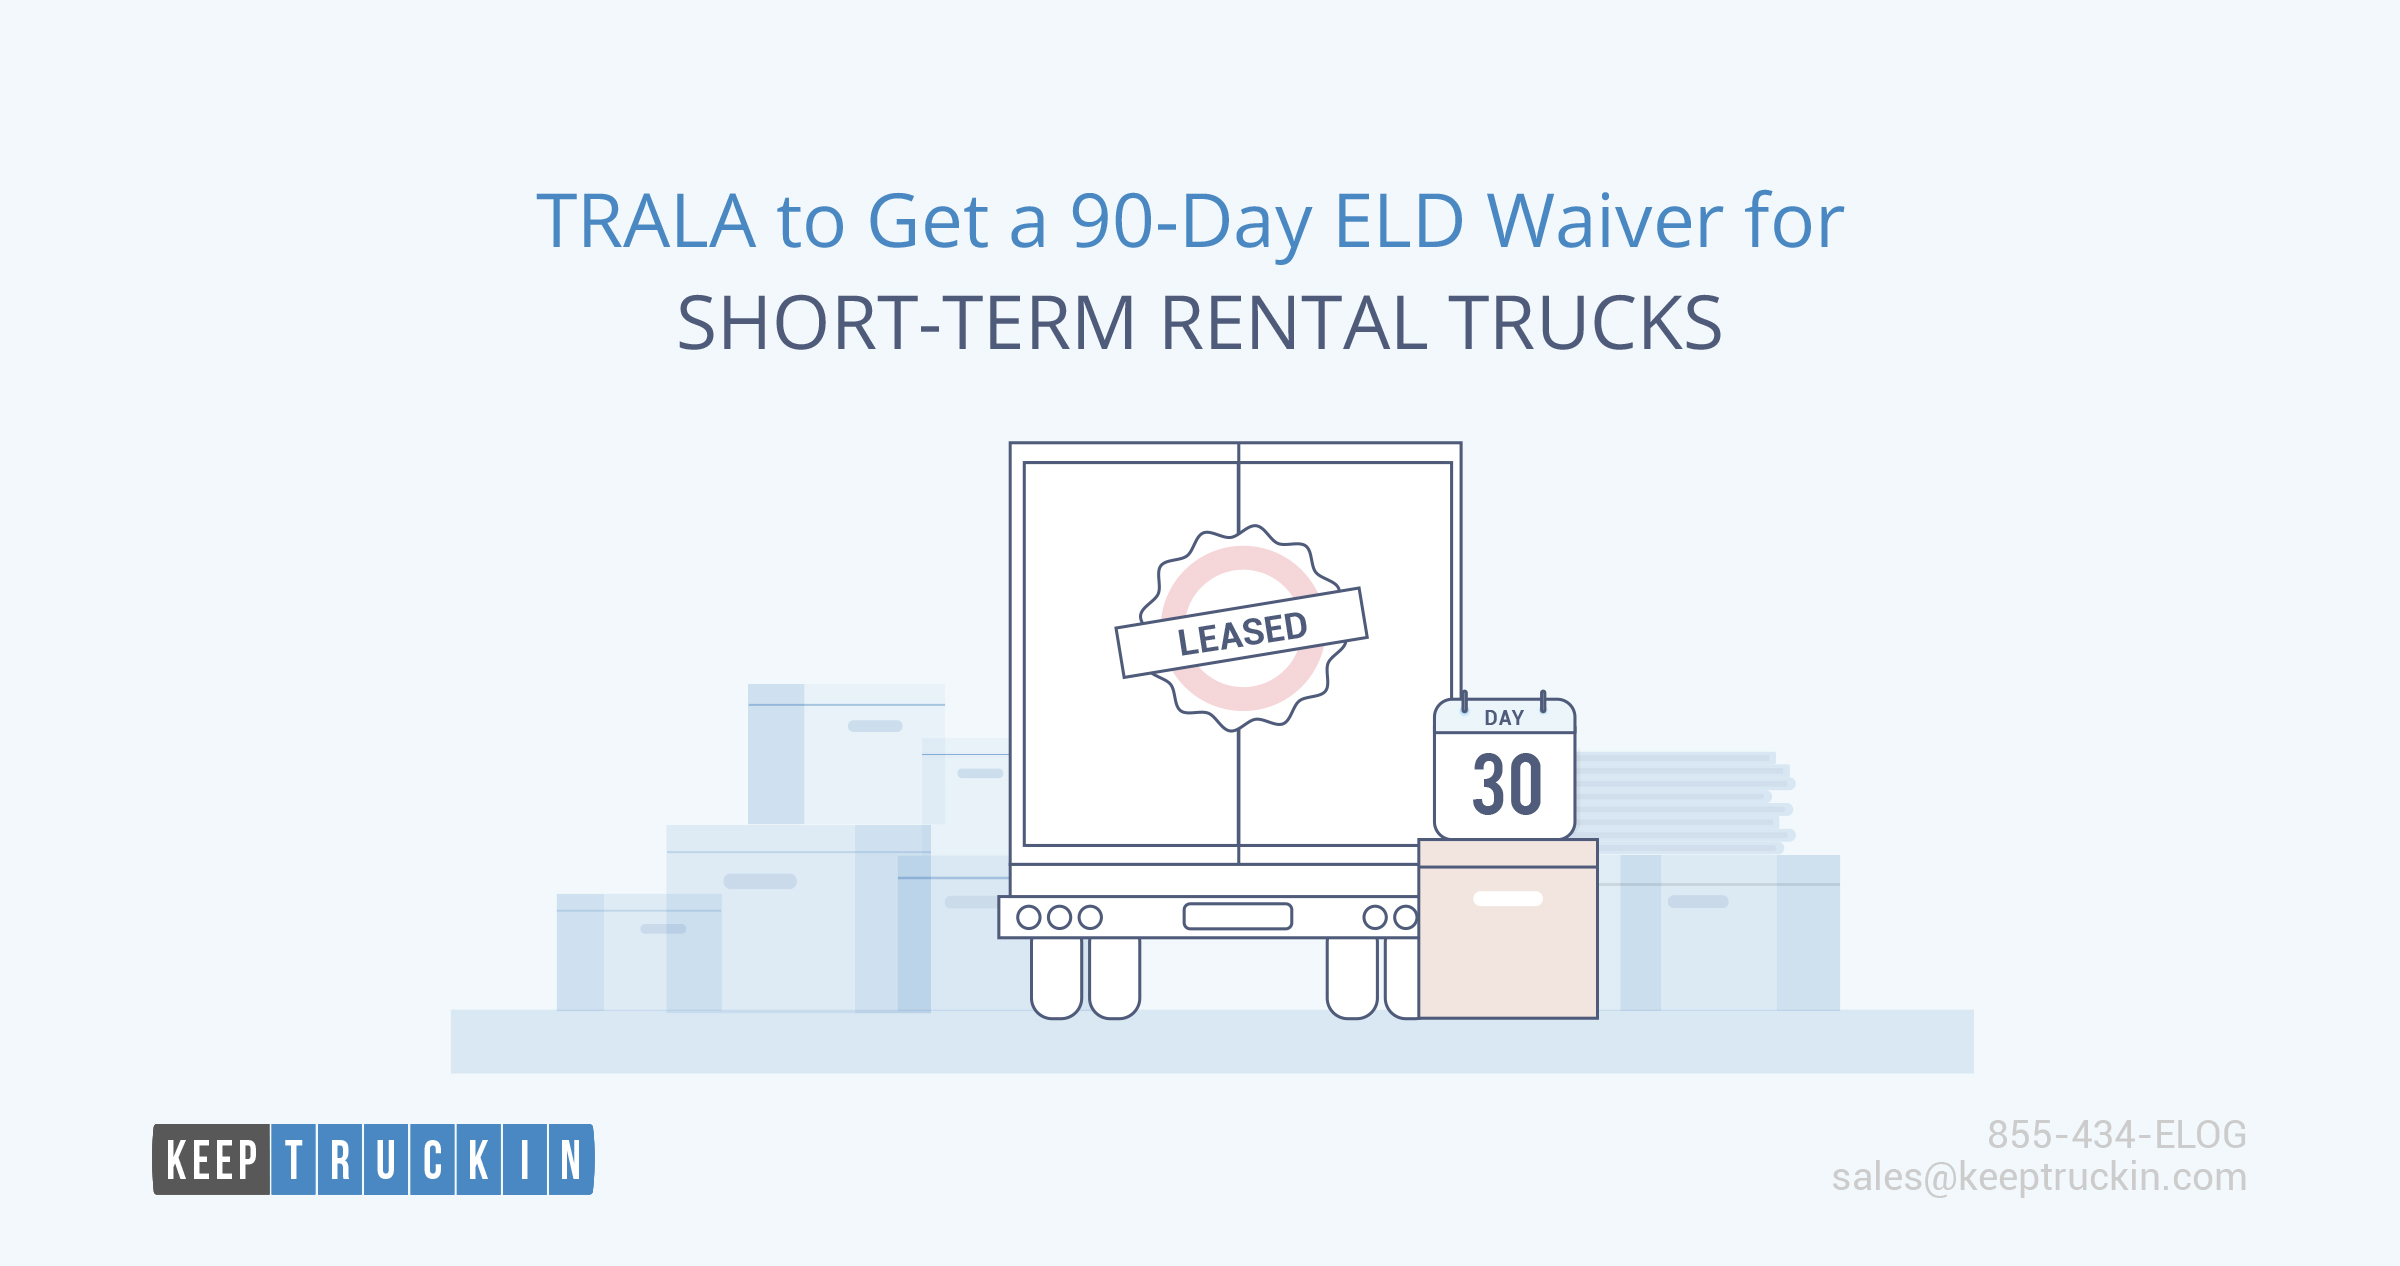 TRALA to Get a 90-Day ELD Waiver for Short-Term Rental Trucks